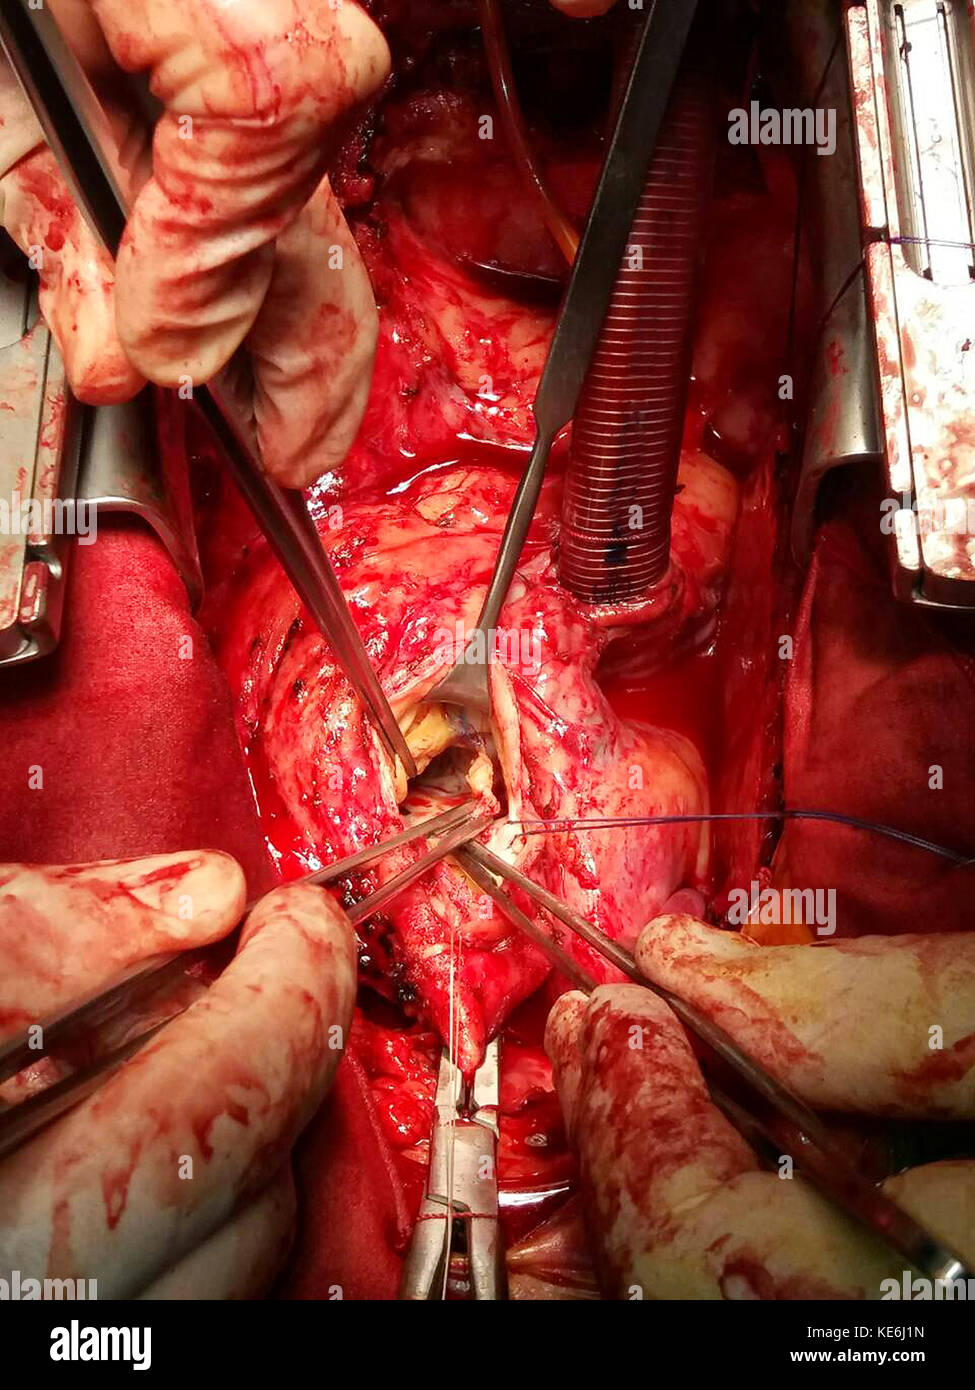 Surgeon hands are tying a knot during the open heart procedure chest during heart surgery - Stock Image